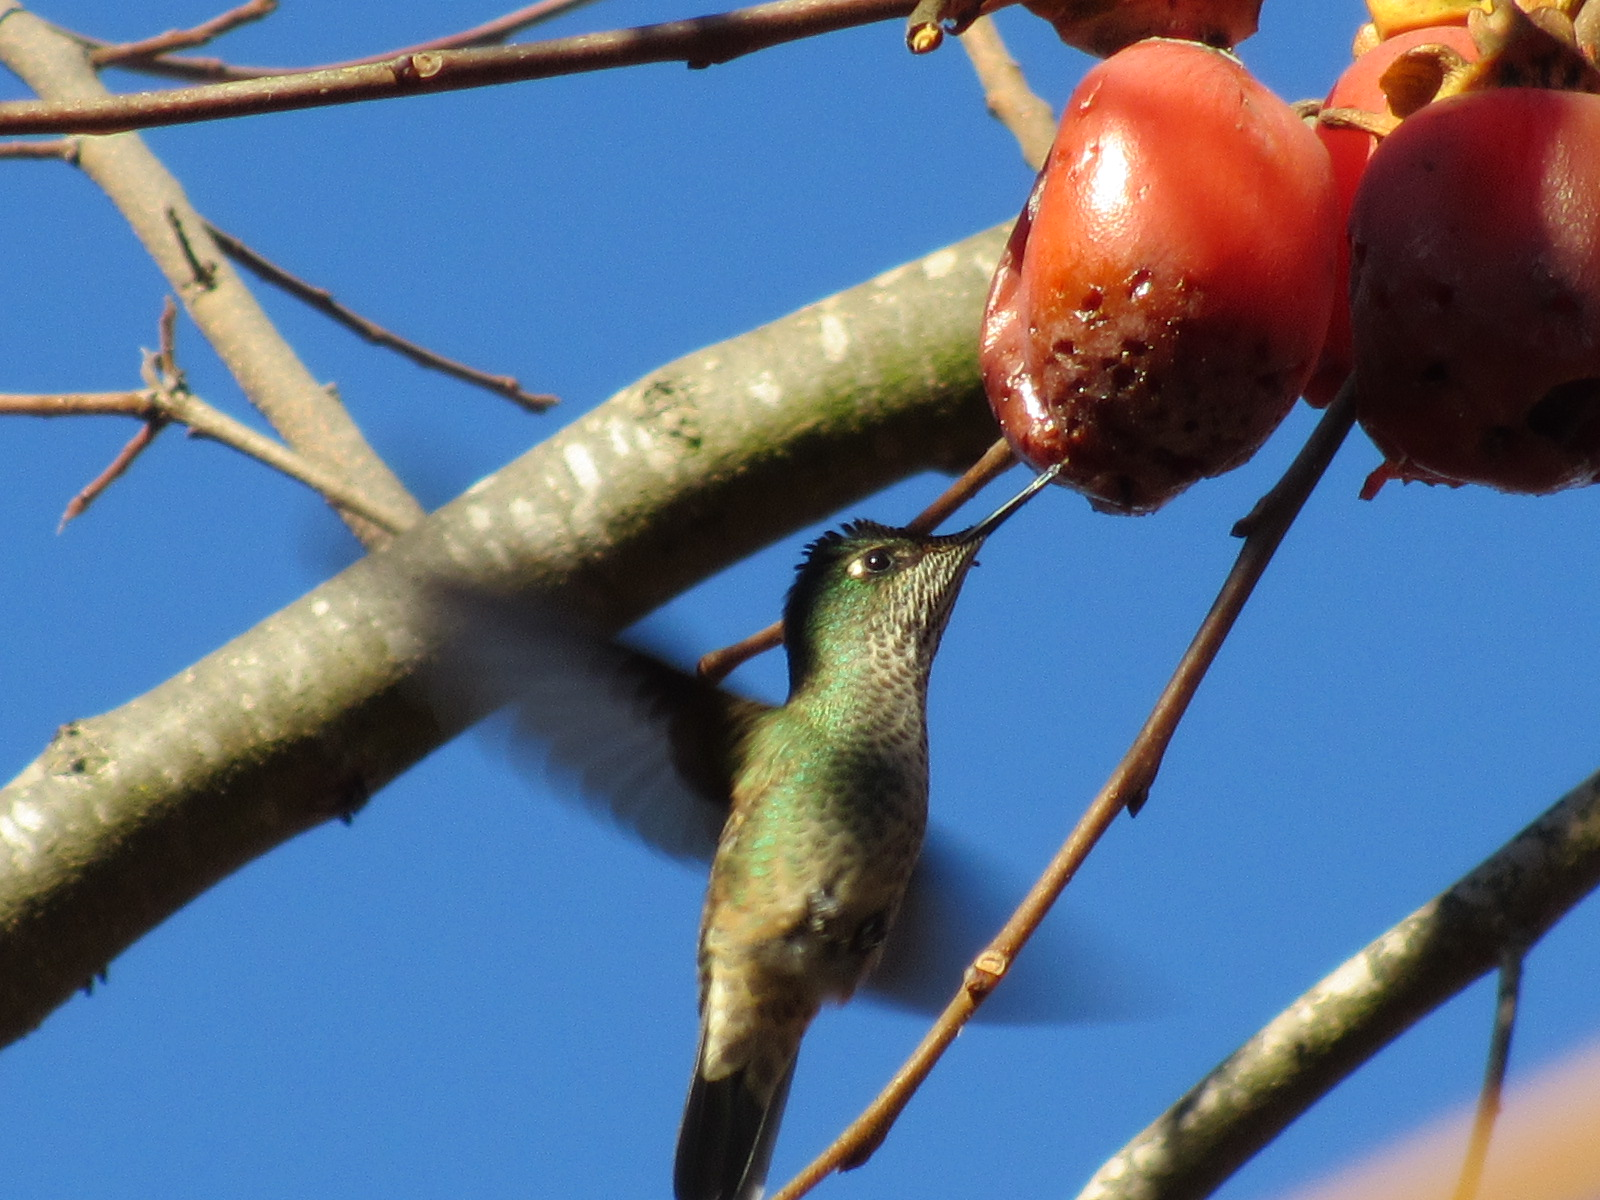 chilean hummingbird eating persimmon fruit